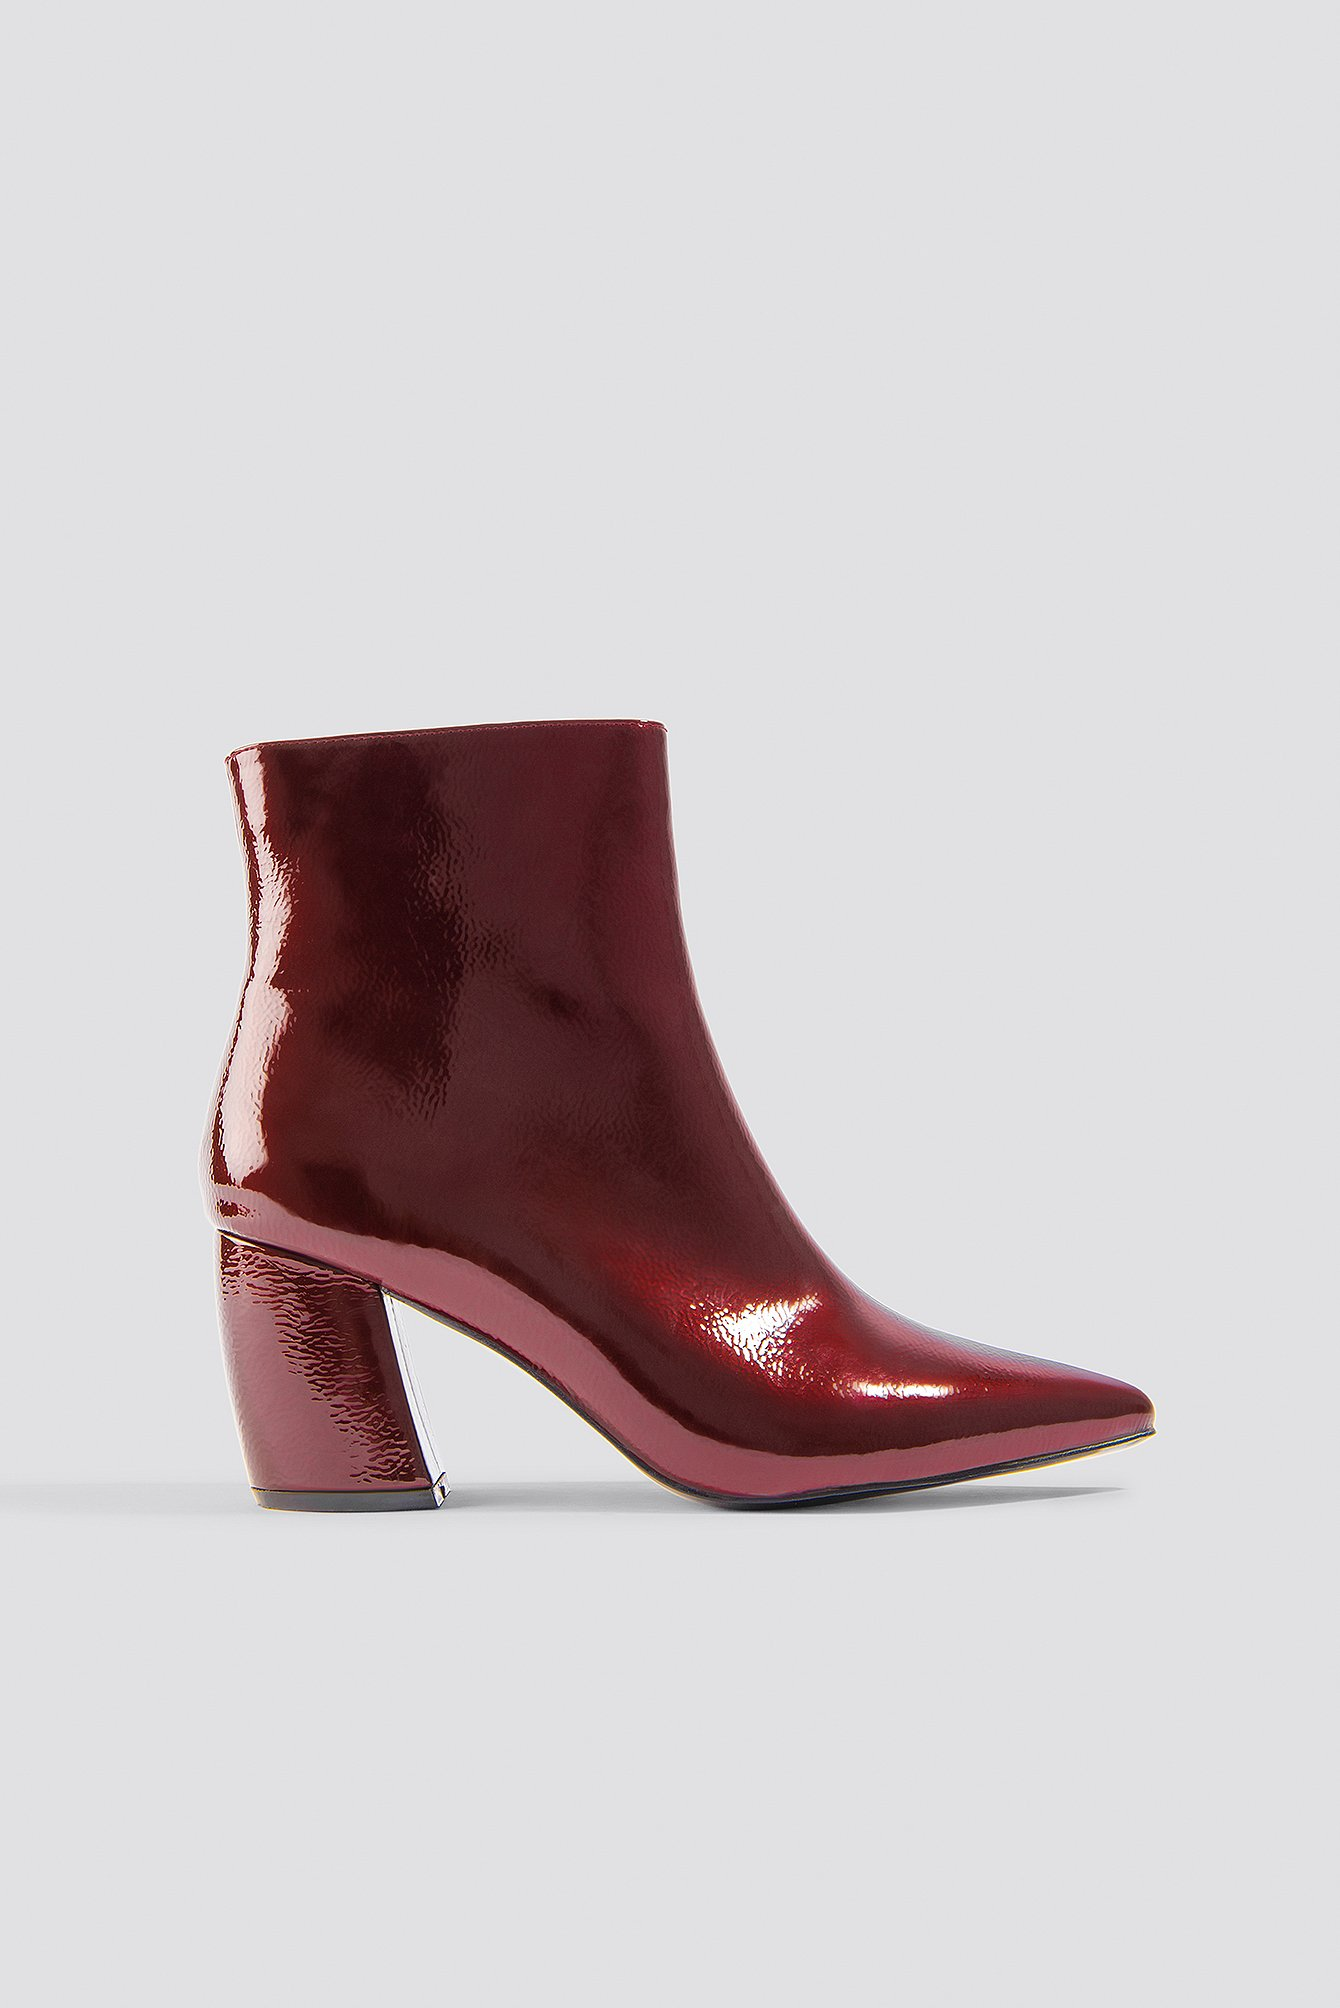 na-kd shoes -  Structured Patent Mid Heel Boots - Red